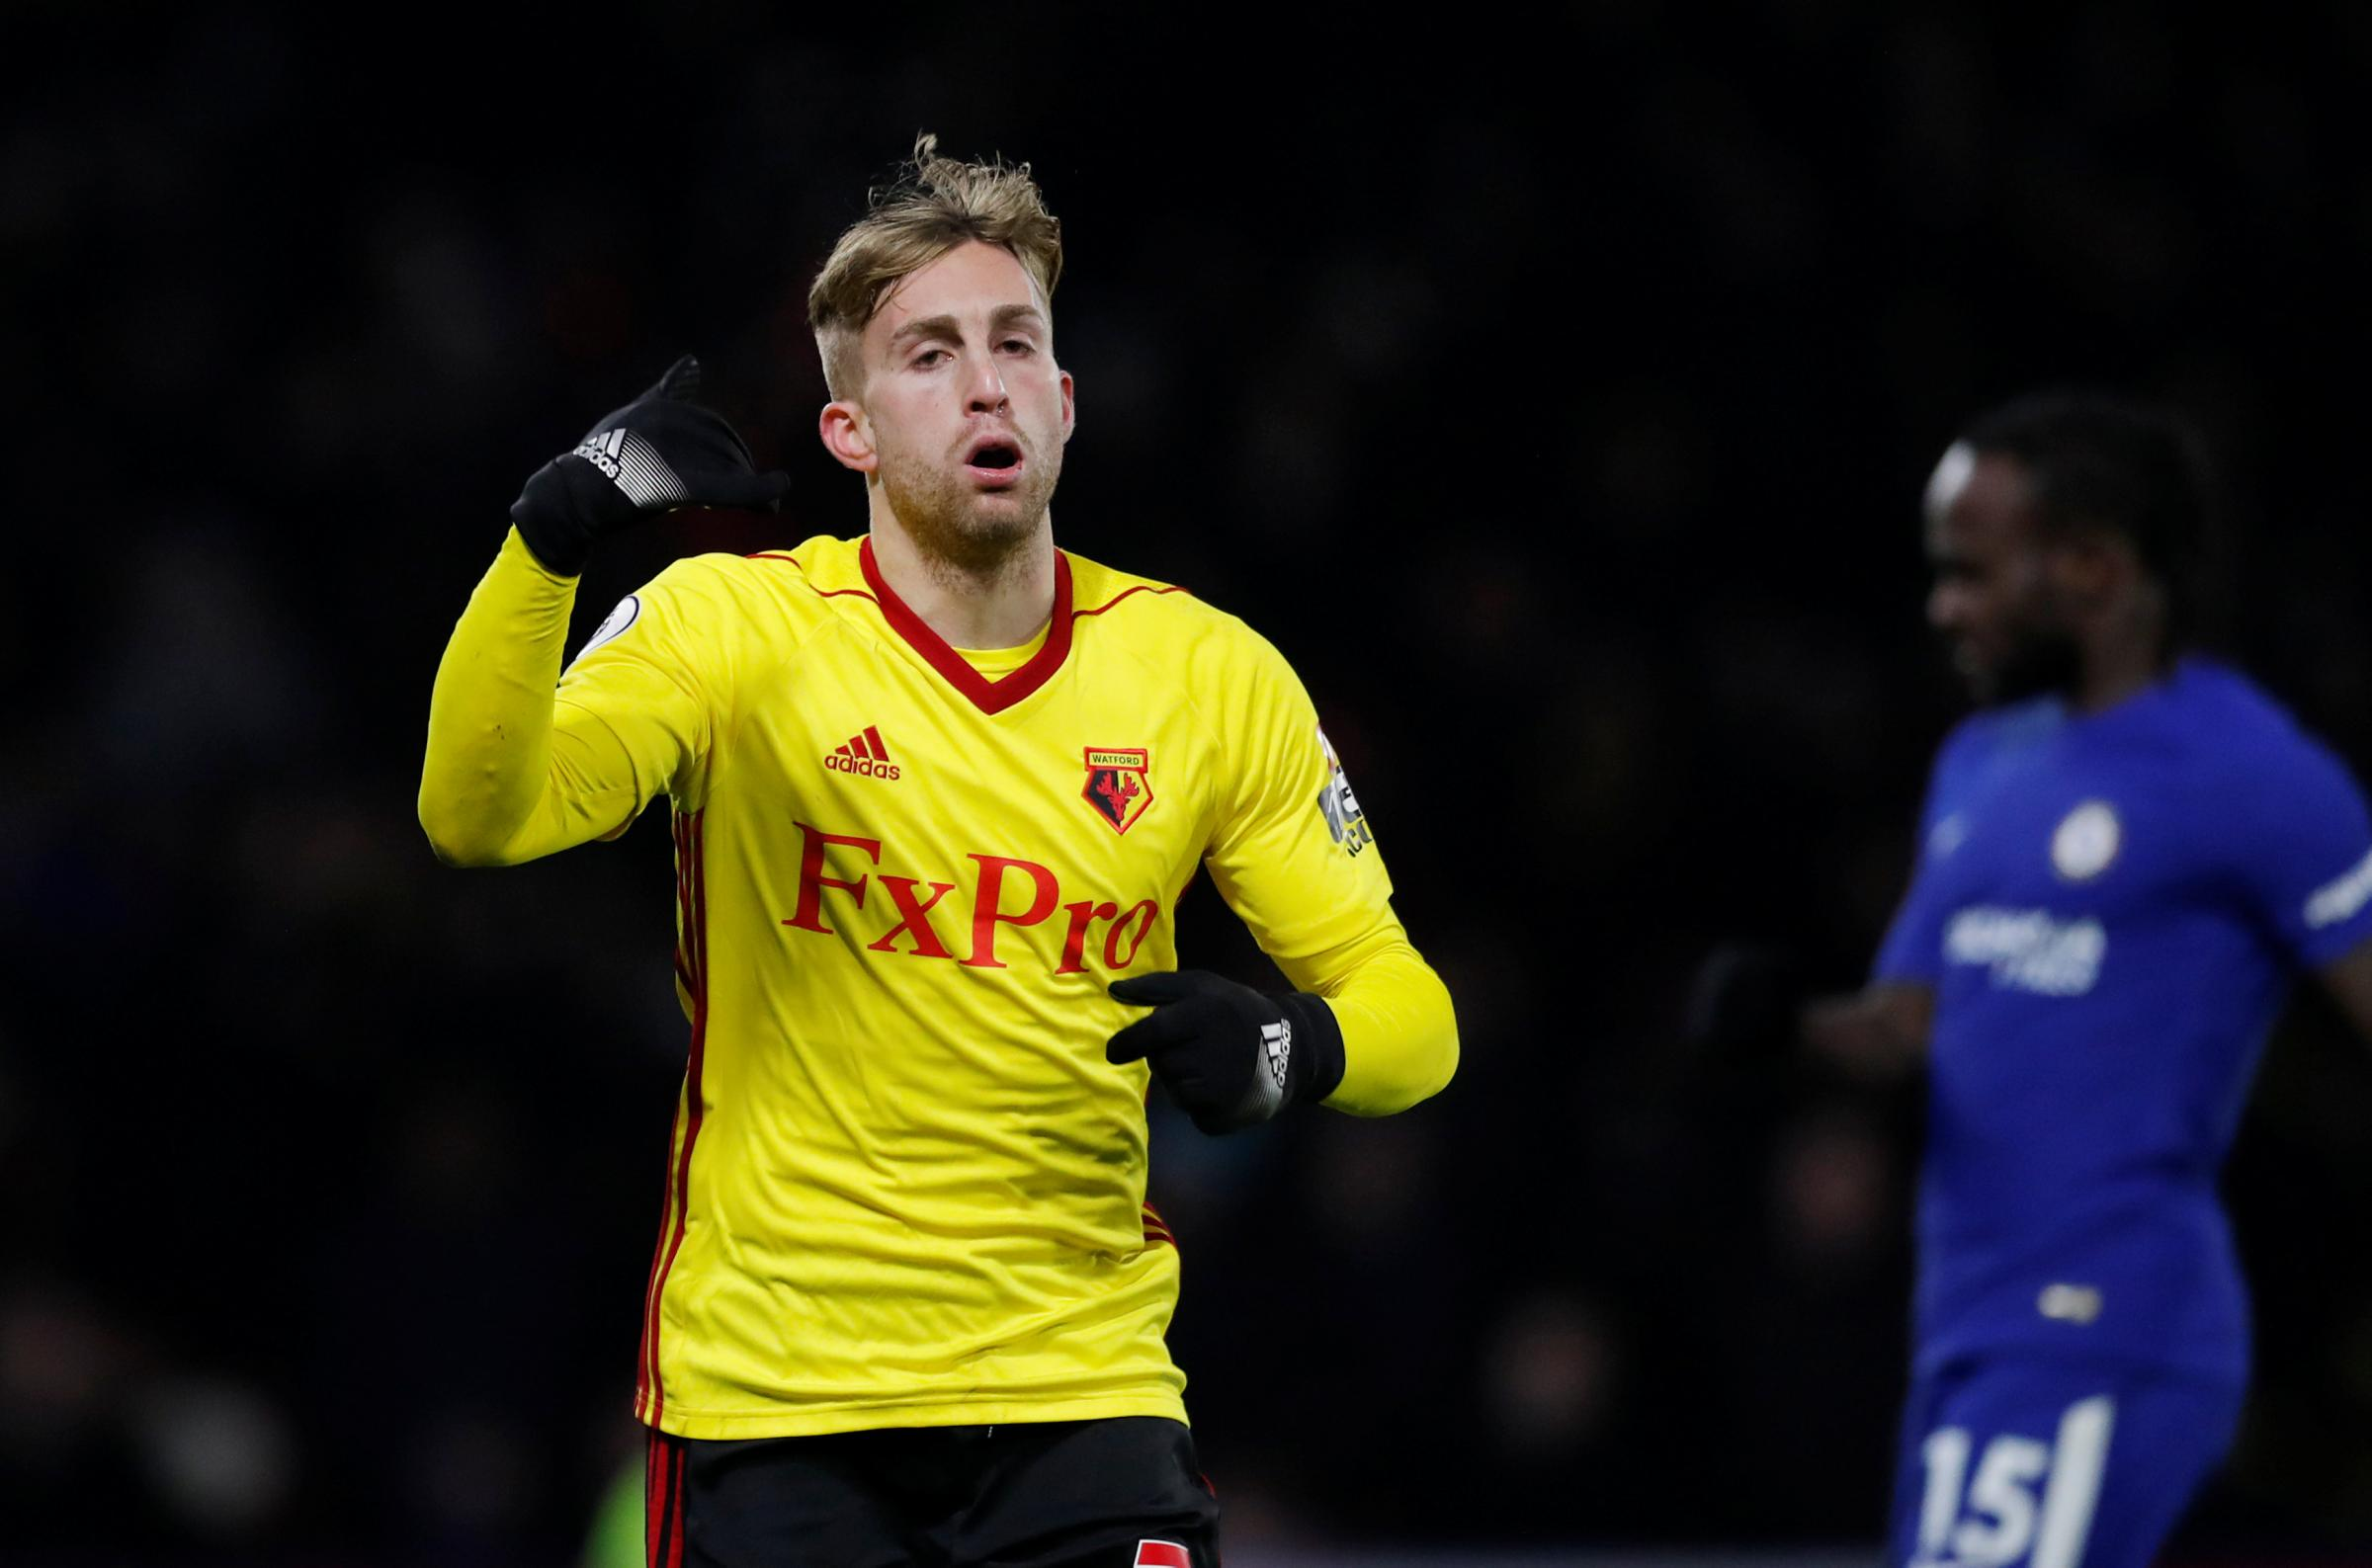 Gerard Deulofeu scored on his home debut to make it 3-1. Picture: Action Images